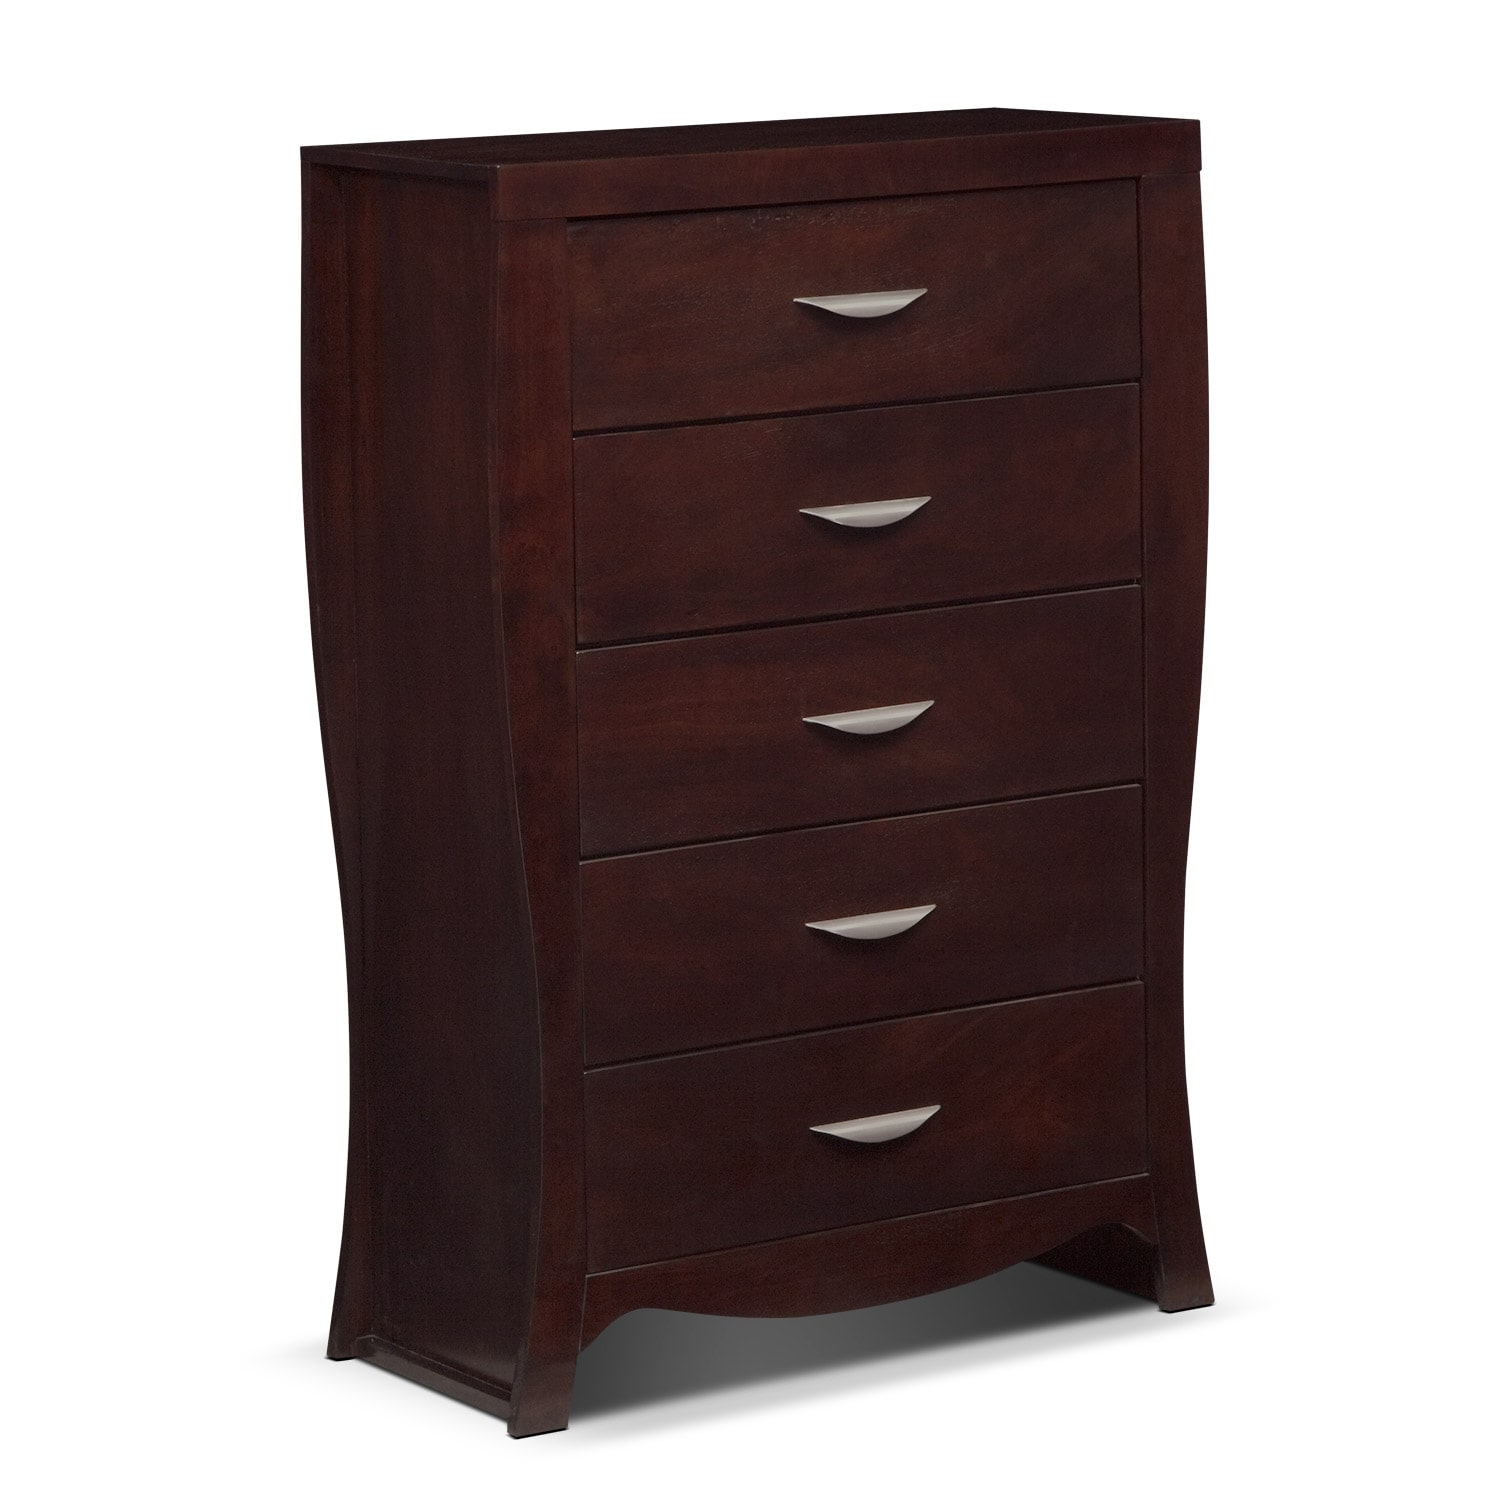 Bedroom Furniture - Jaden Chest - Merlot